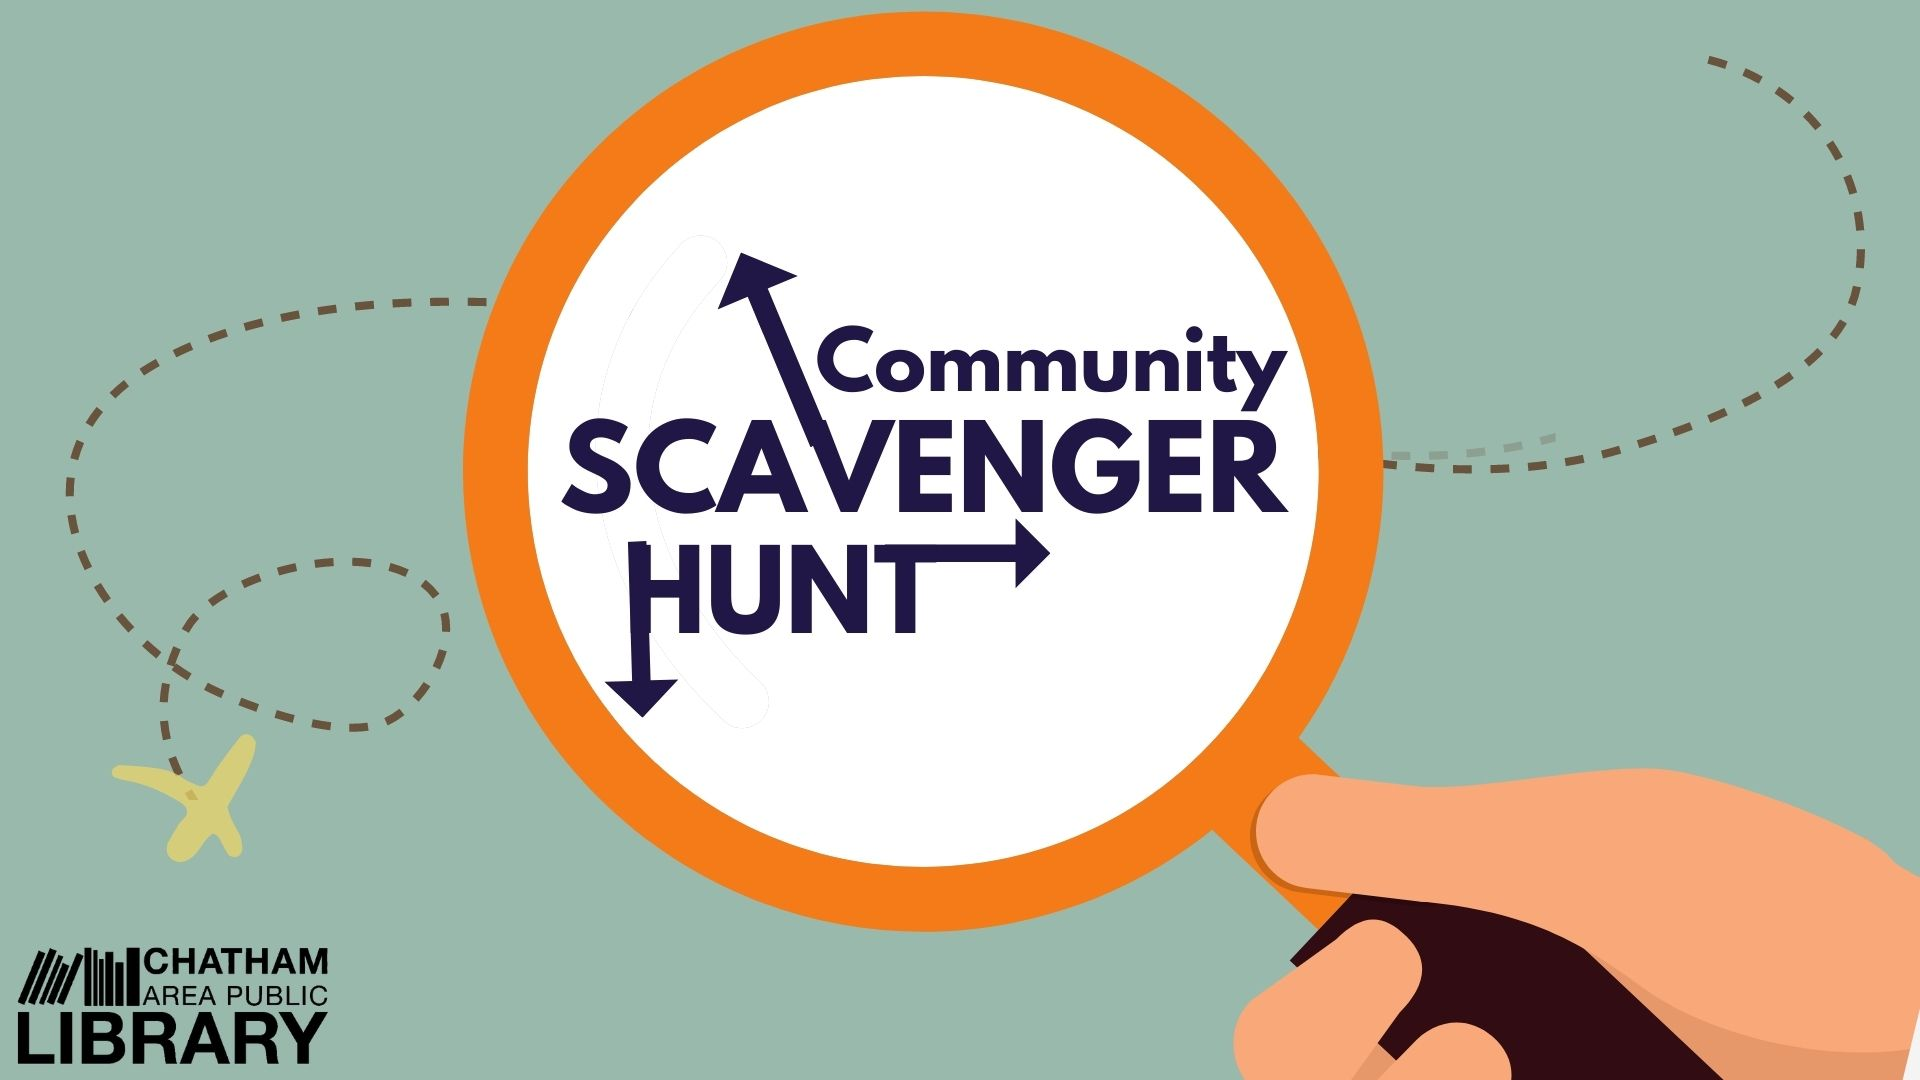 The Library invites you to participate in a Community Scavenger Hunt!